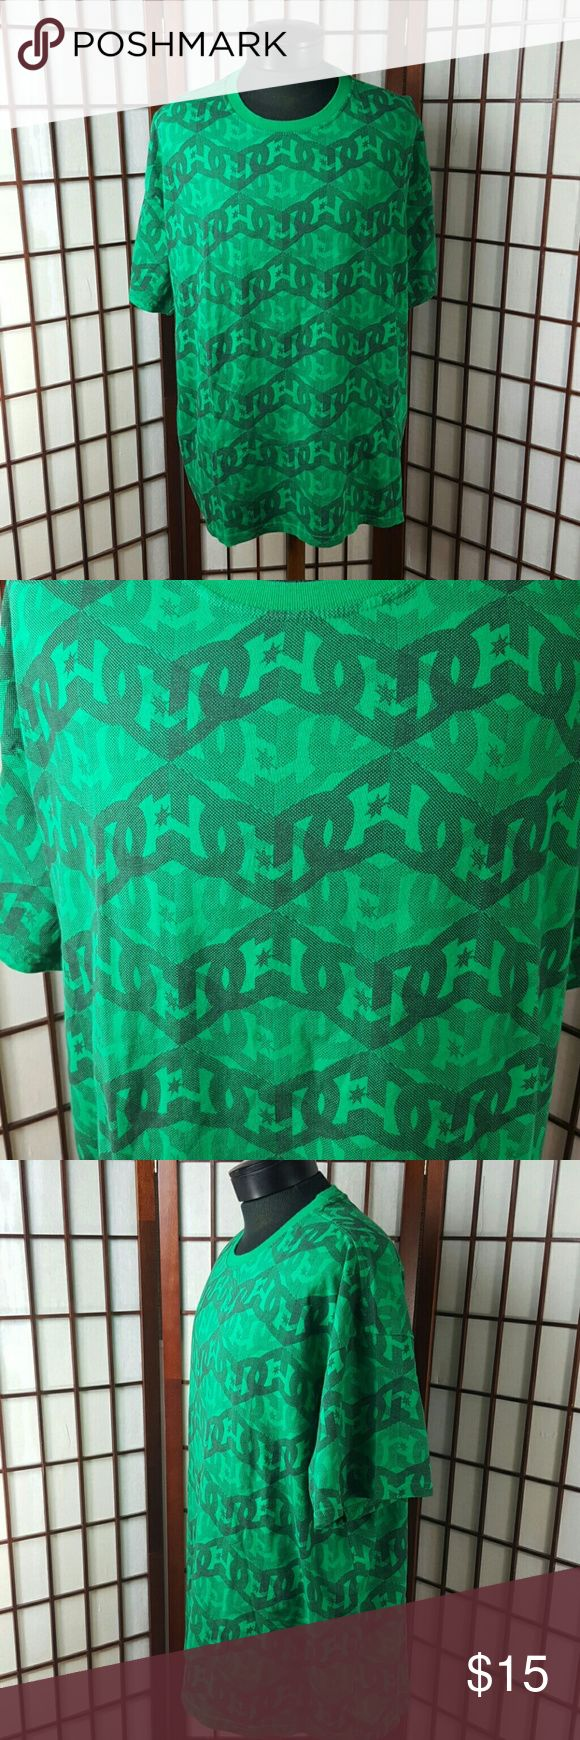 "GREEN DC Men's T Shirt Size XXL Pre-owned gently worn  DC Size XXL T-shirt style  Green color DC brand symbol pattern Made of cotton  Measurements approximate  Pit to pit 27.5"" Shoulder to hem 29.5"" DC Shirts Tees - Short Sleeve"